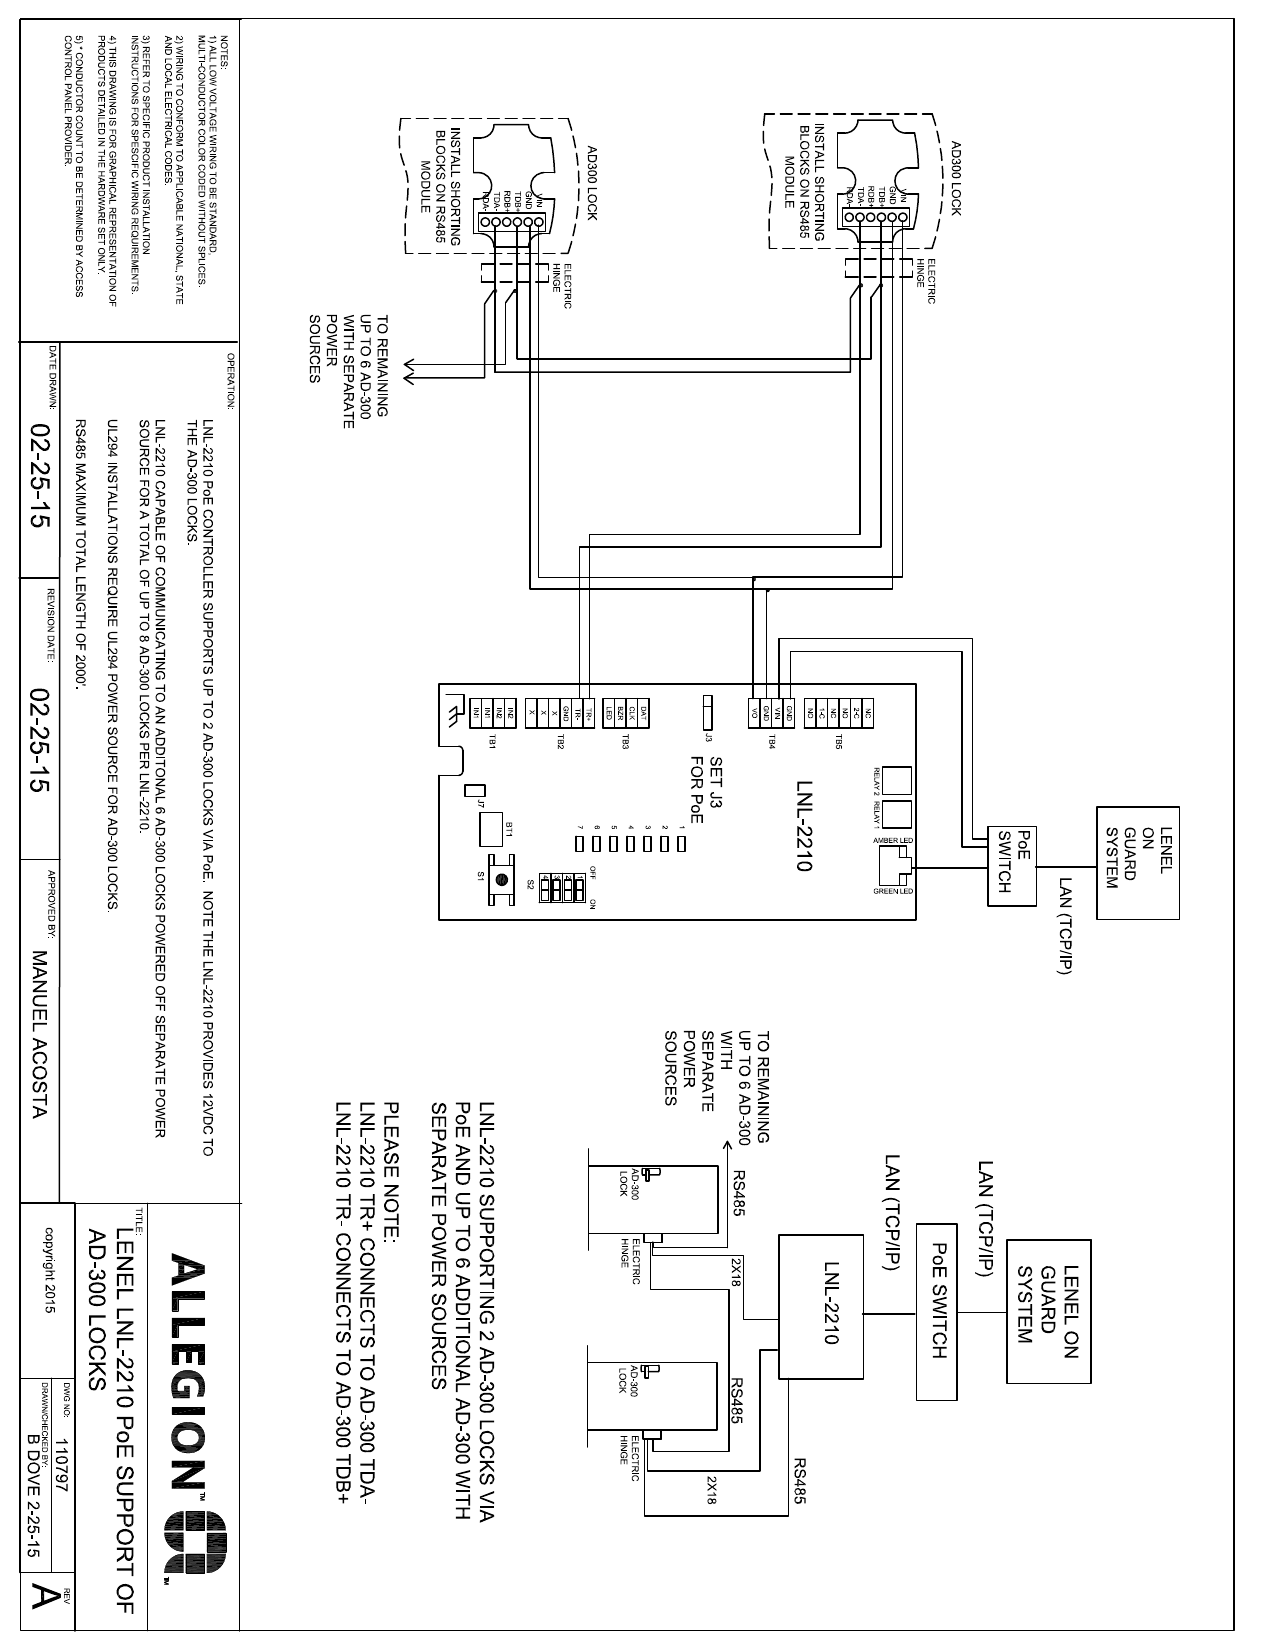 Schlage Ad 300 Lenel Lnl Rs485 Wiring Diagram